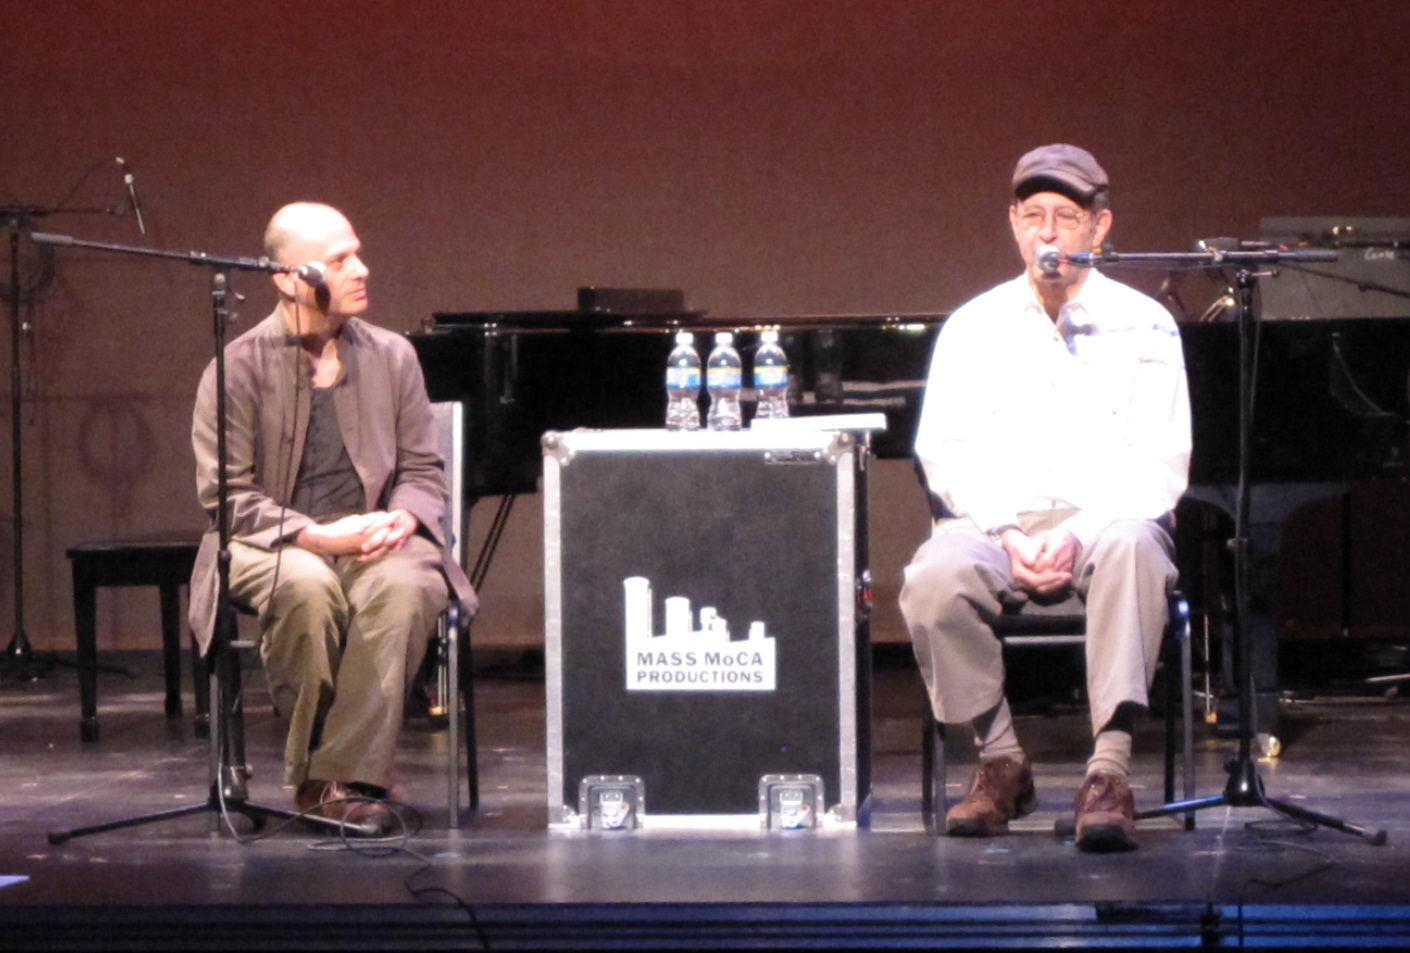 Composers David Lang and Steve Reich at MASS MoCA on Saturday, July 25. (Copyright 2009, Steven P. Marsh)